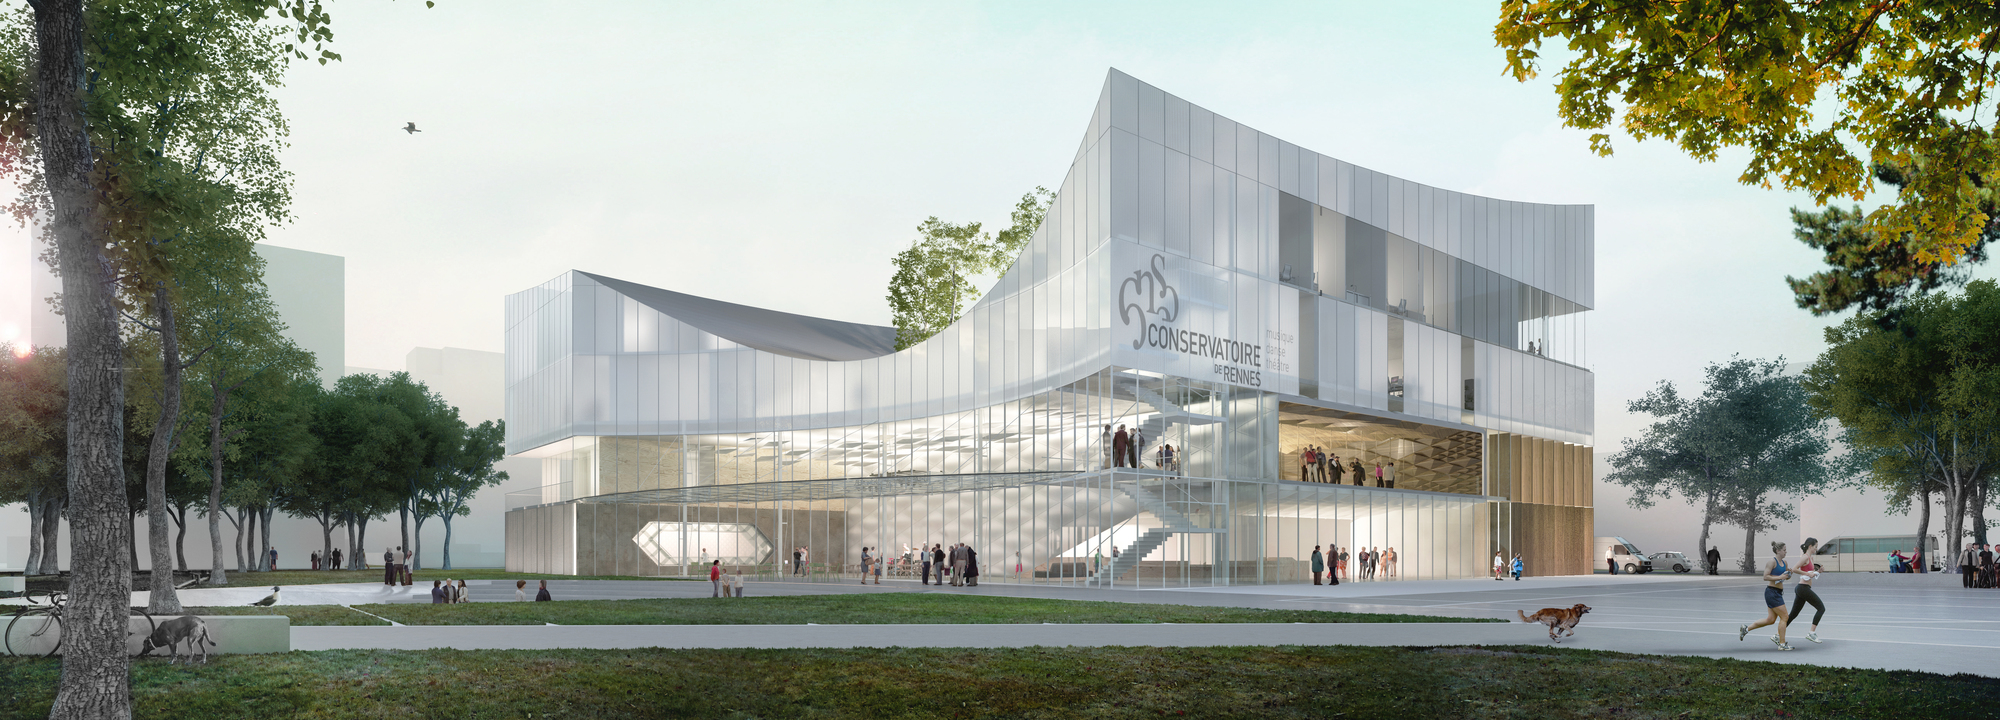 tetrarc architects unveils design proposal for the rennes